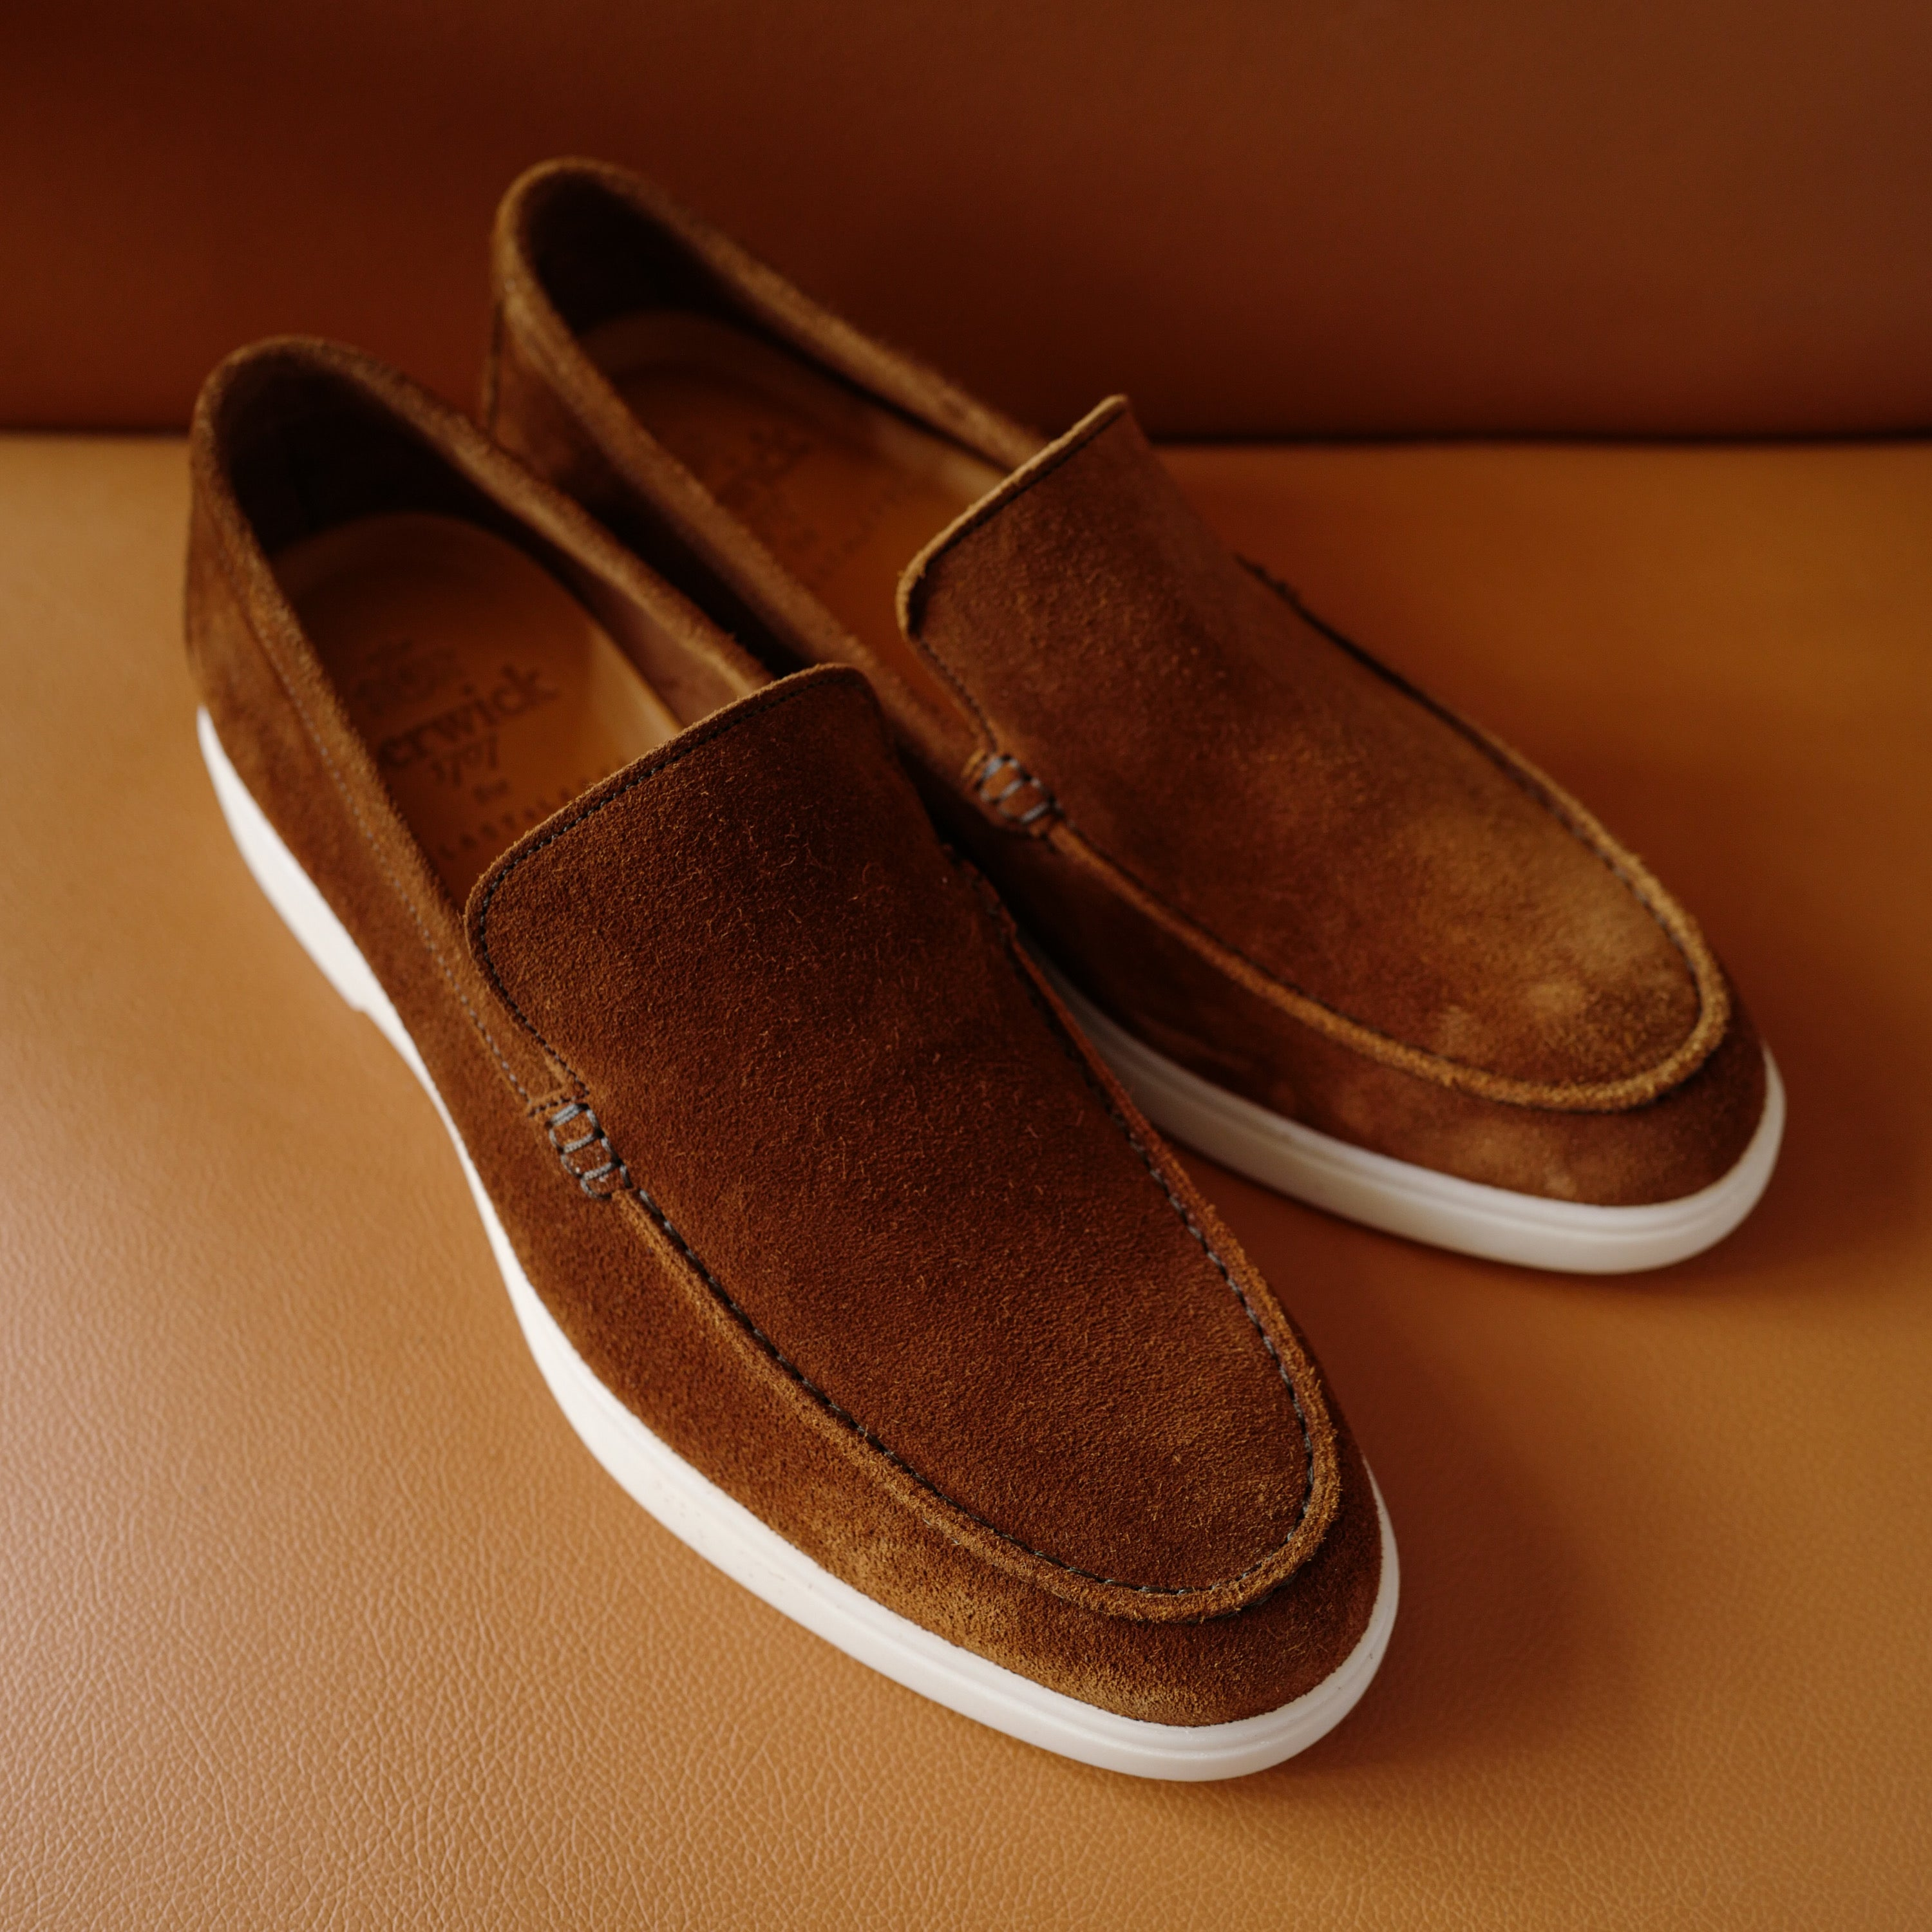 5191 Slip-on Loafers in Kudu Brown